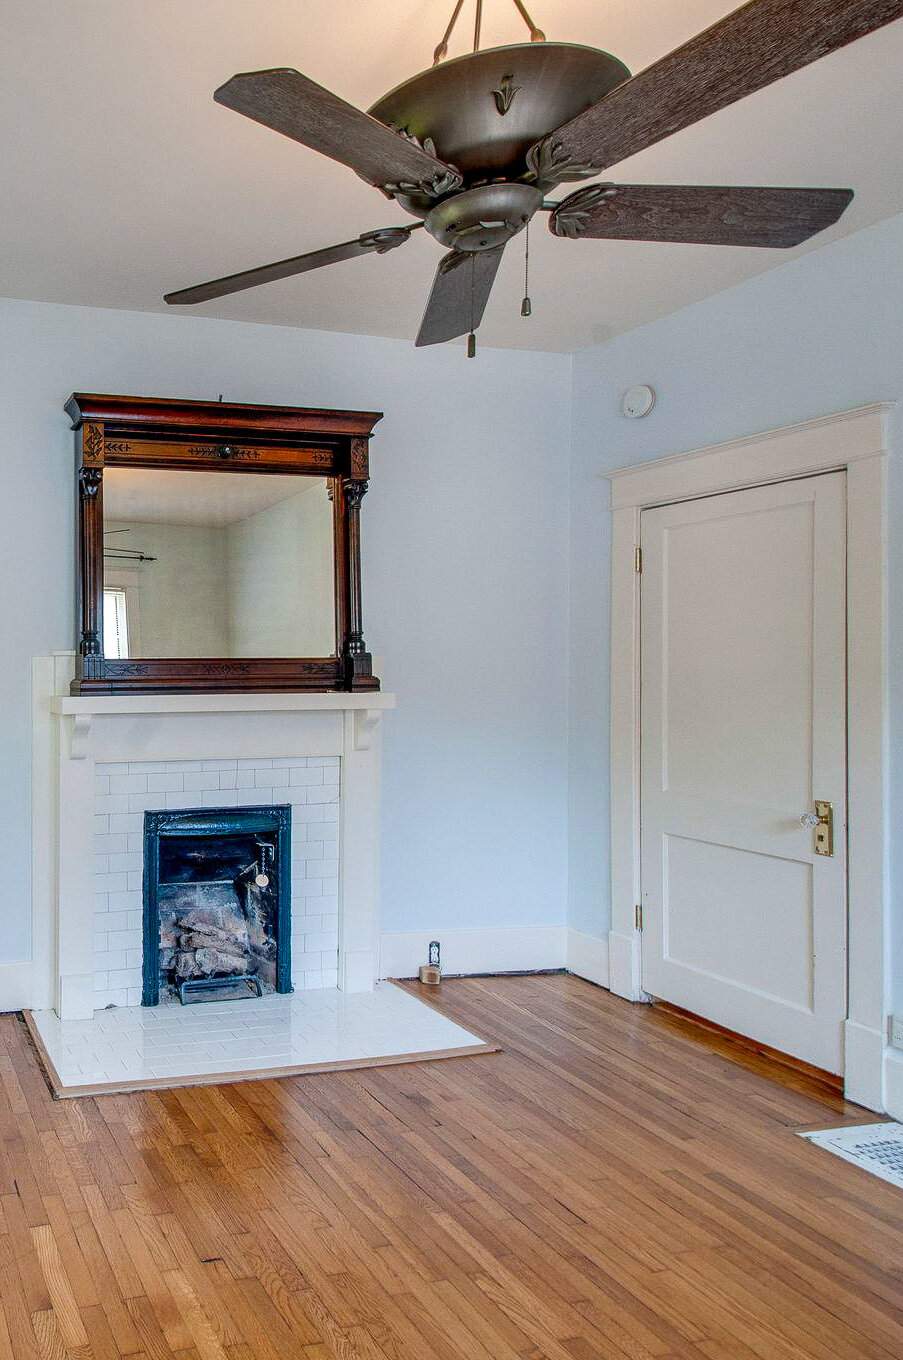 historic fireplace and mantel